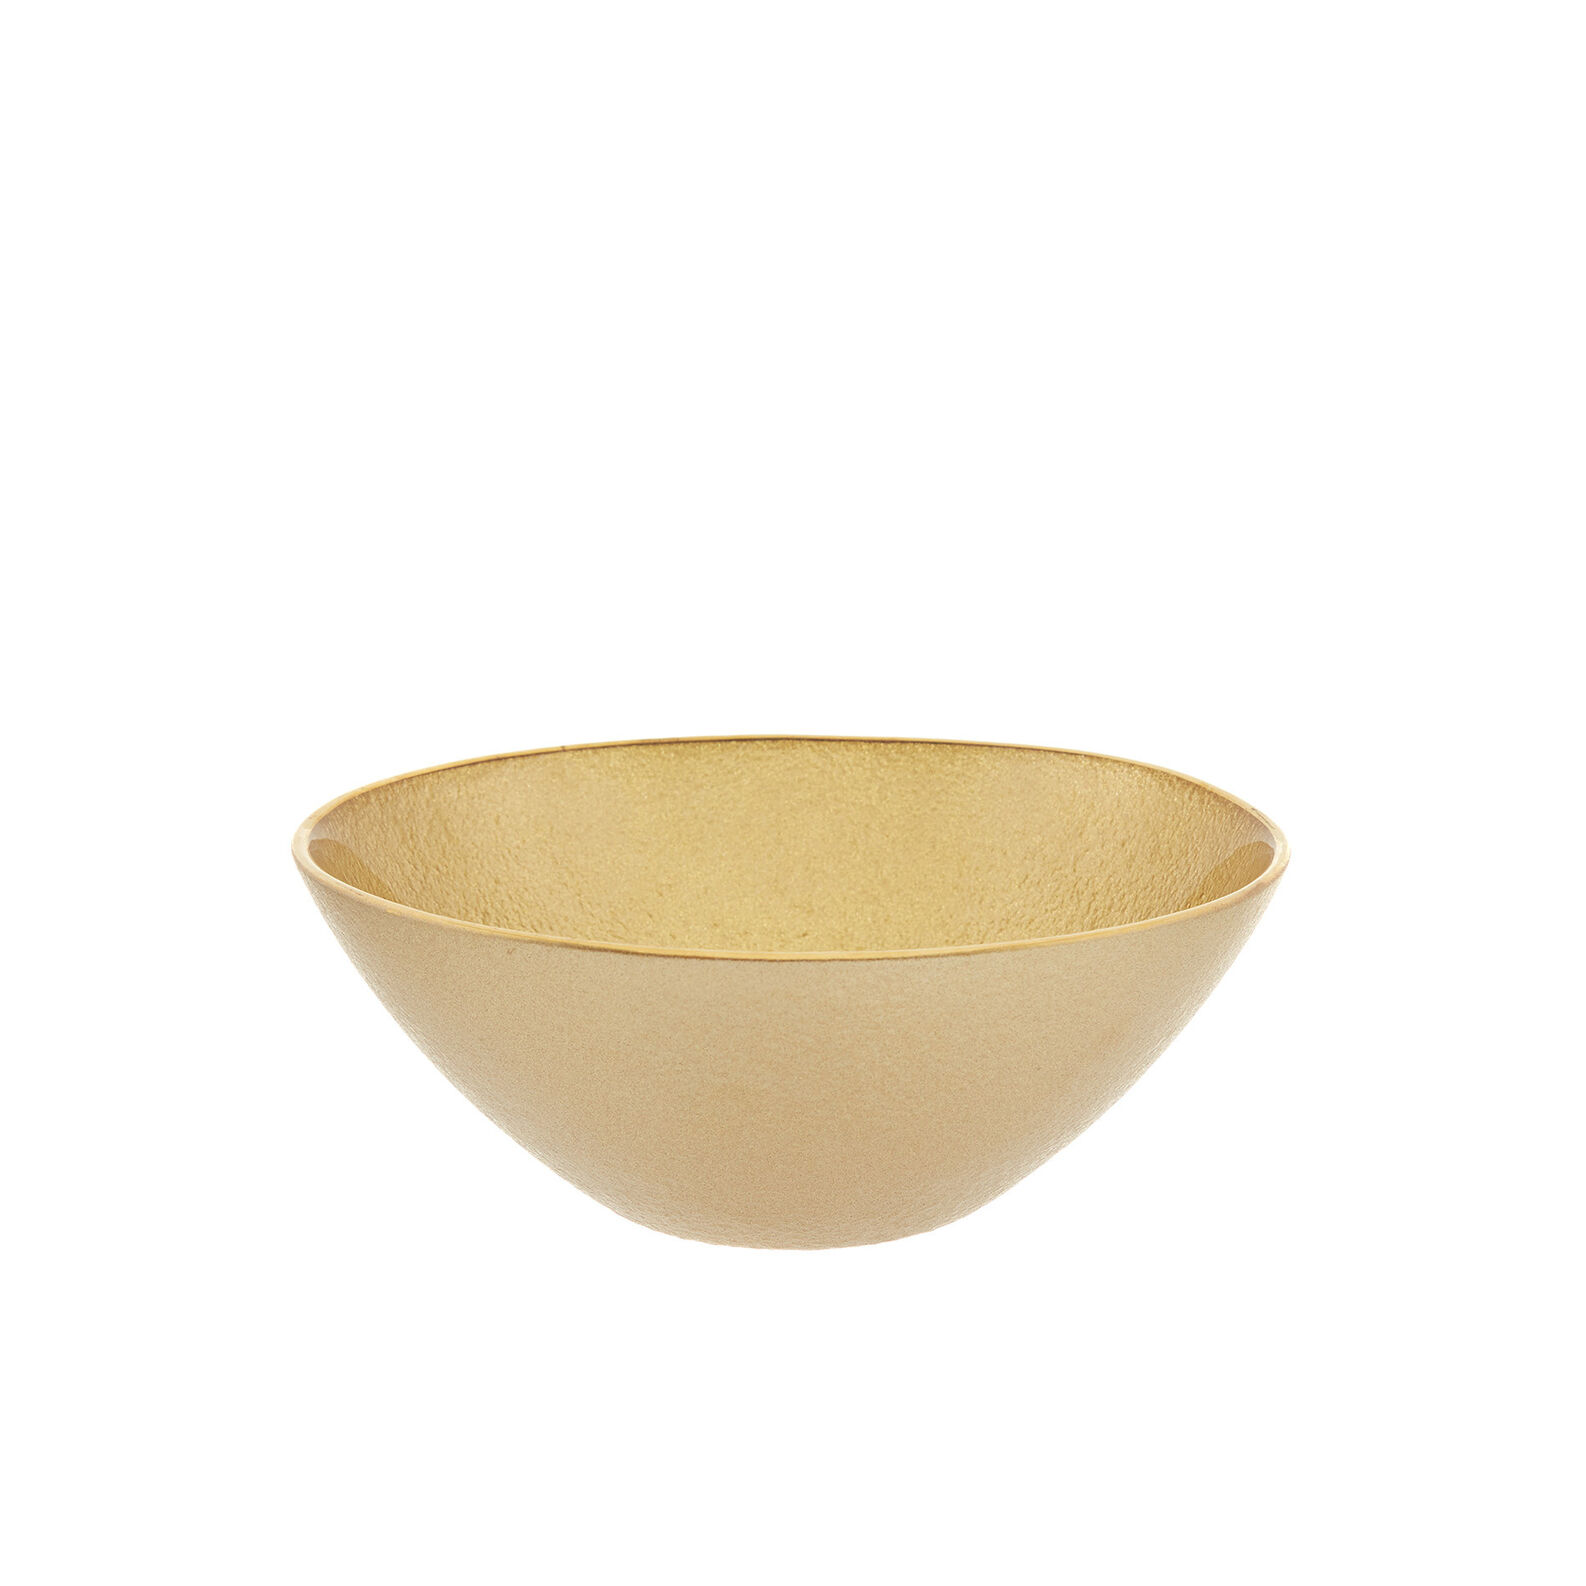 Small gold glass bowl